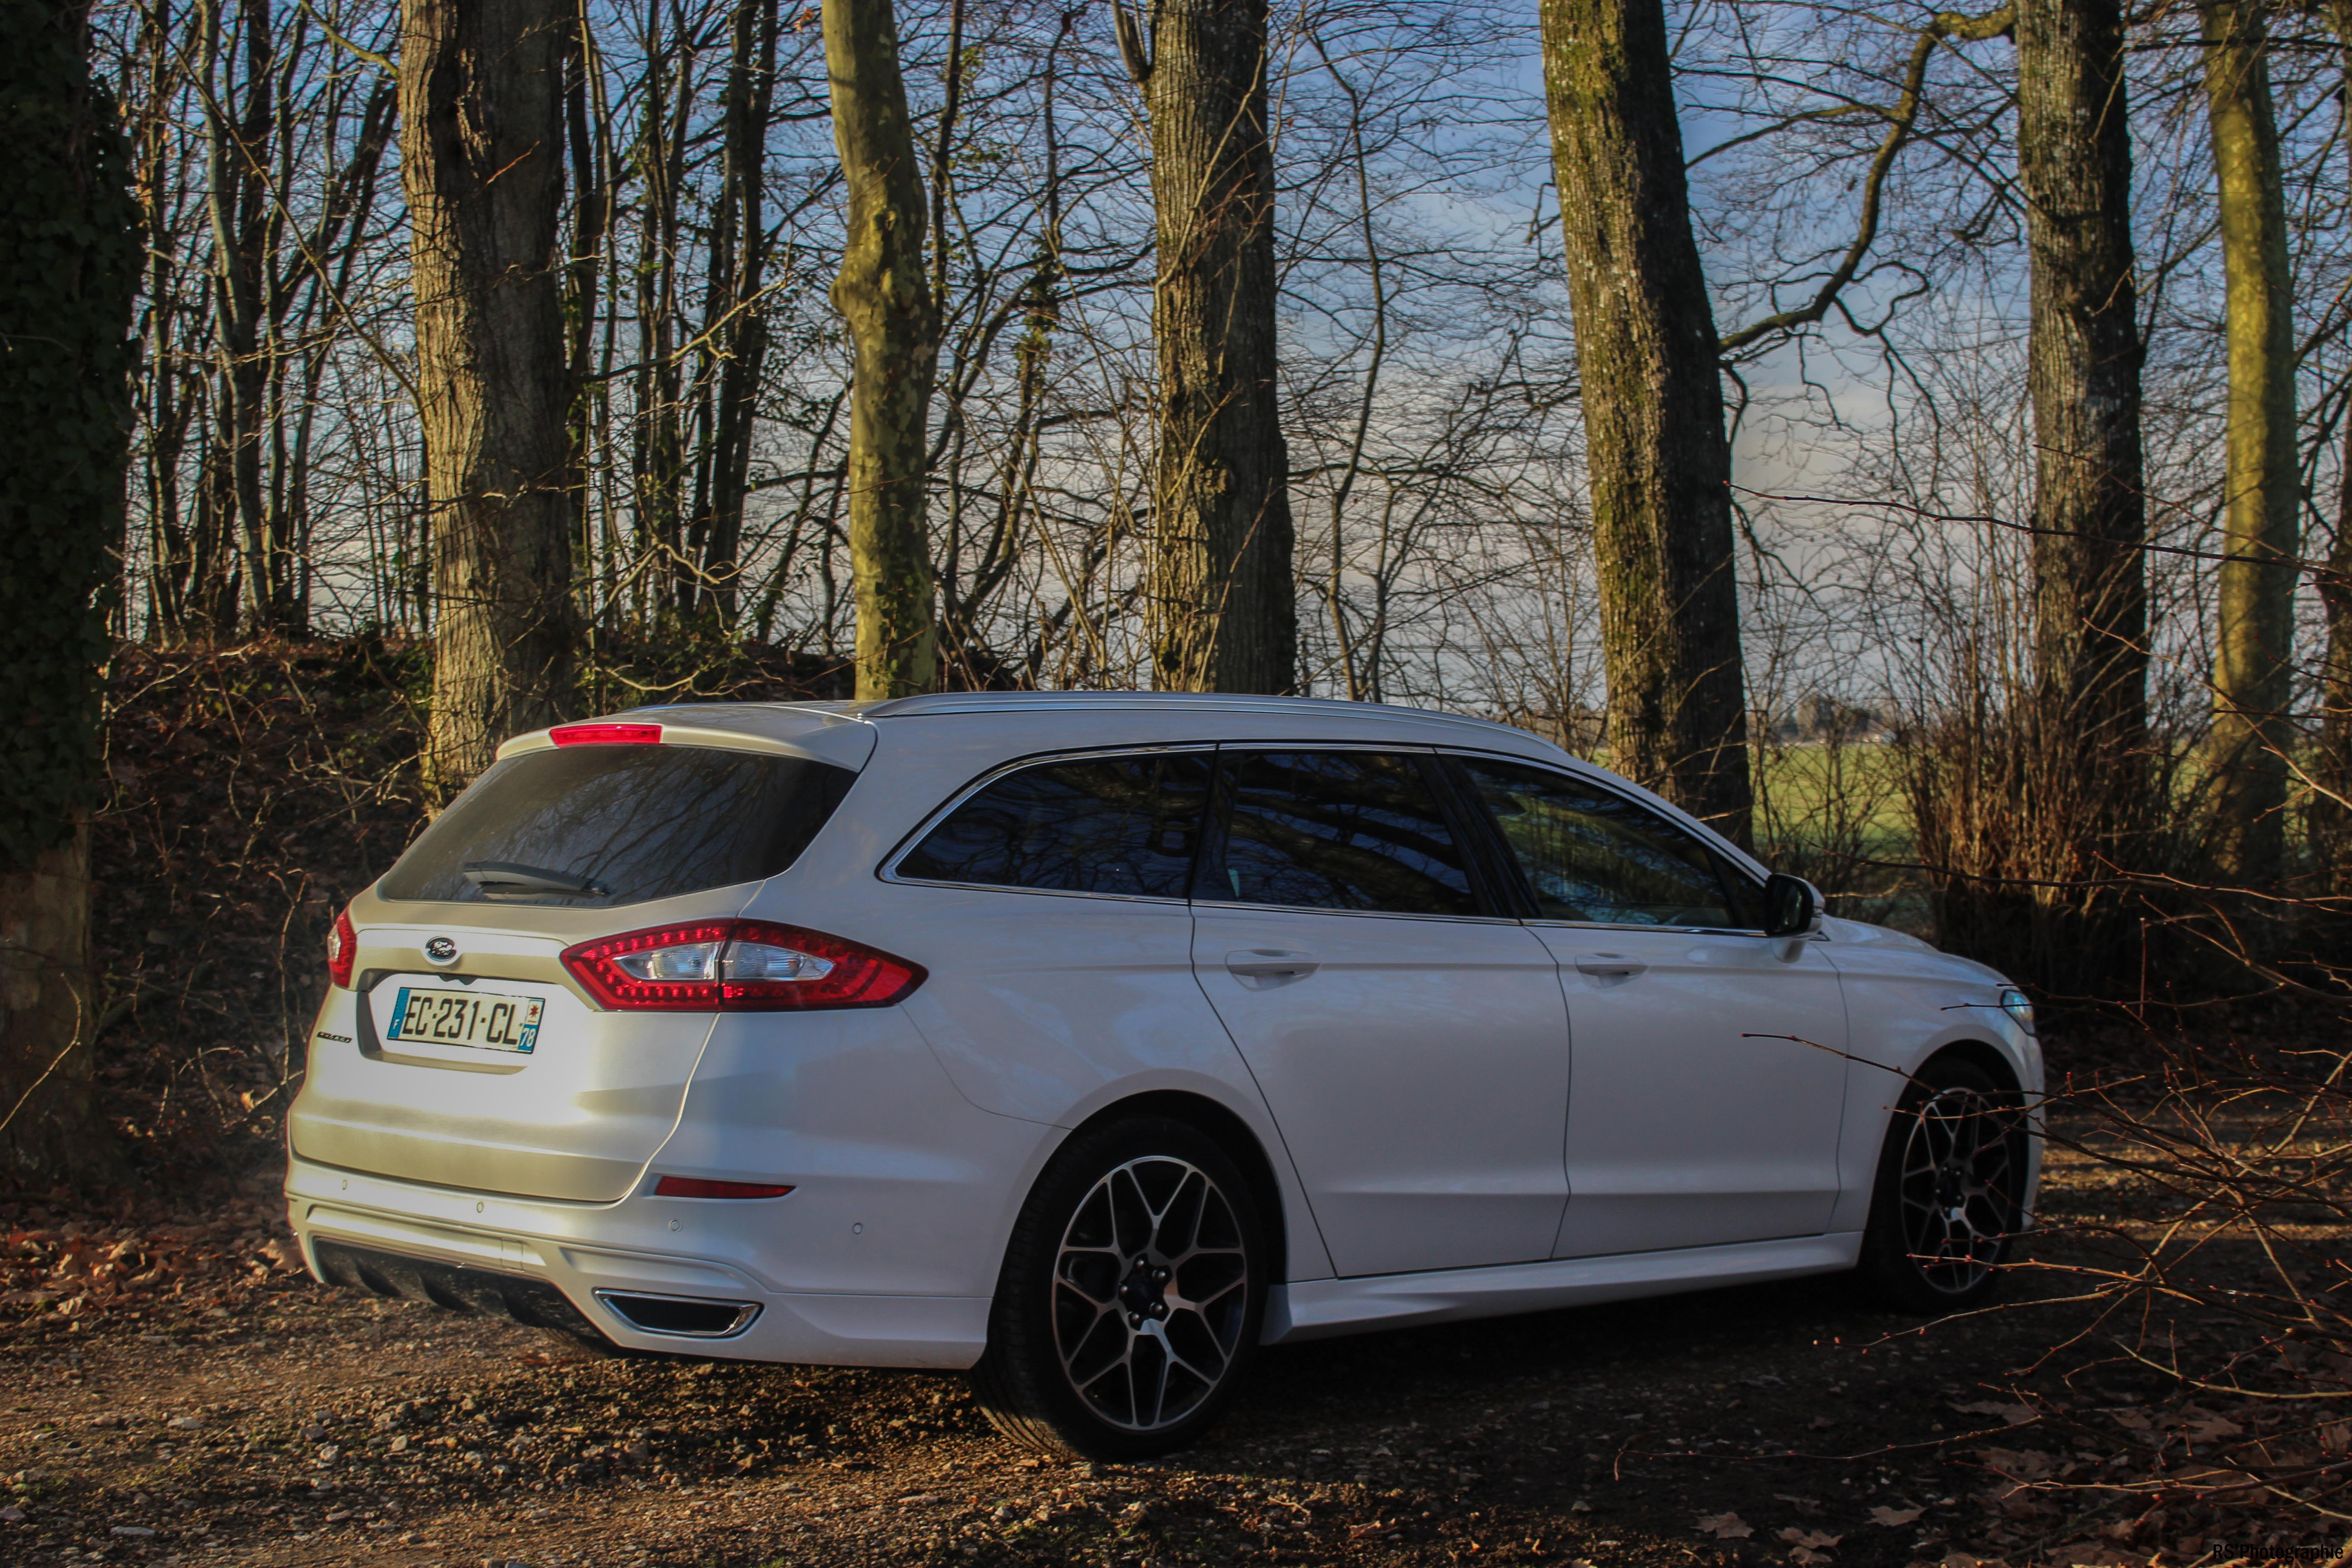 FordMondeoSW14-ford-mondeo-sw-180-arriere-rear-arnaud-demasier-rsphotographie